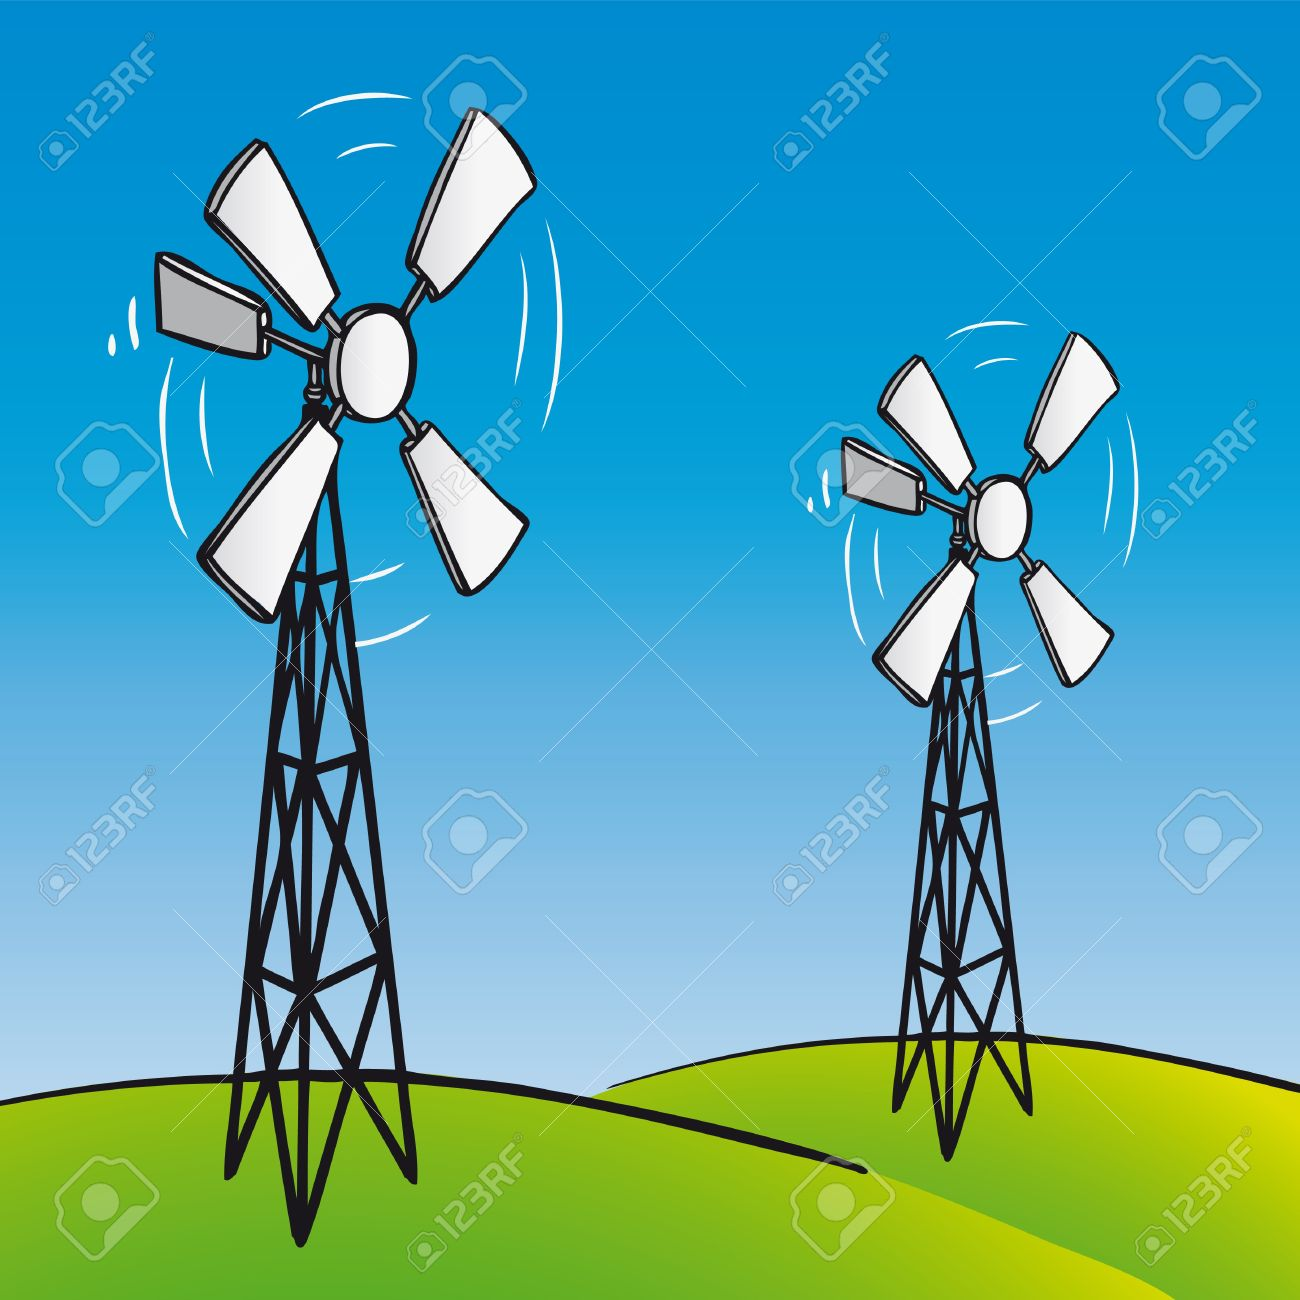 Old Wind Turbine Royalty Free Cliparts, Vectors, And Stock.